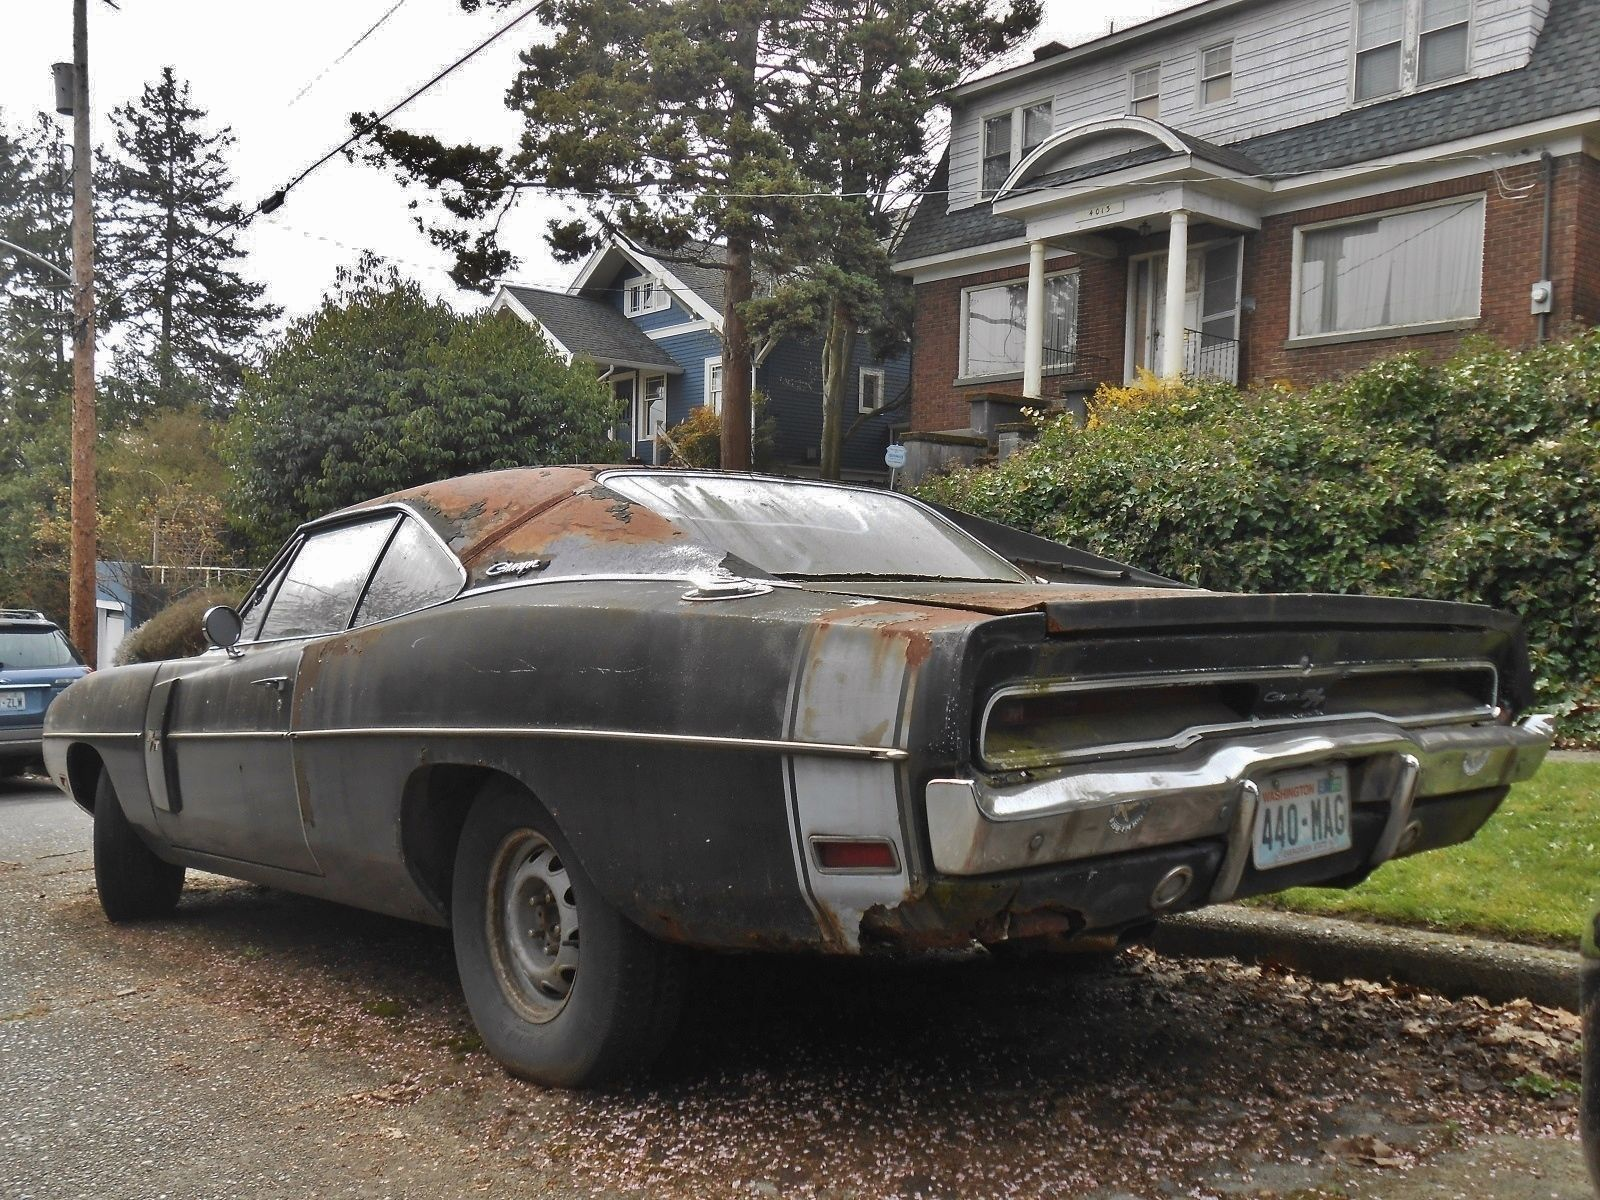 1970 Dodge Charger R/T | muscle car | Pinterest | Dodge charger ...